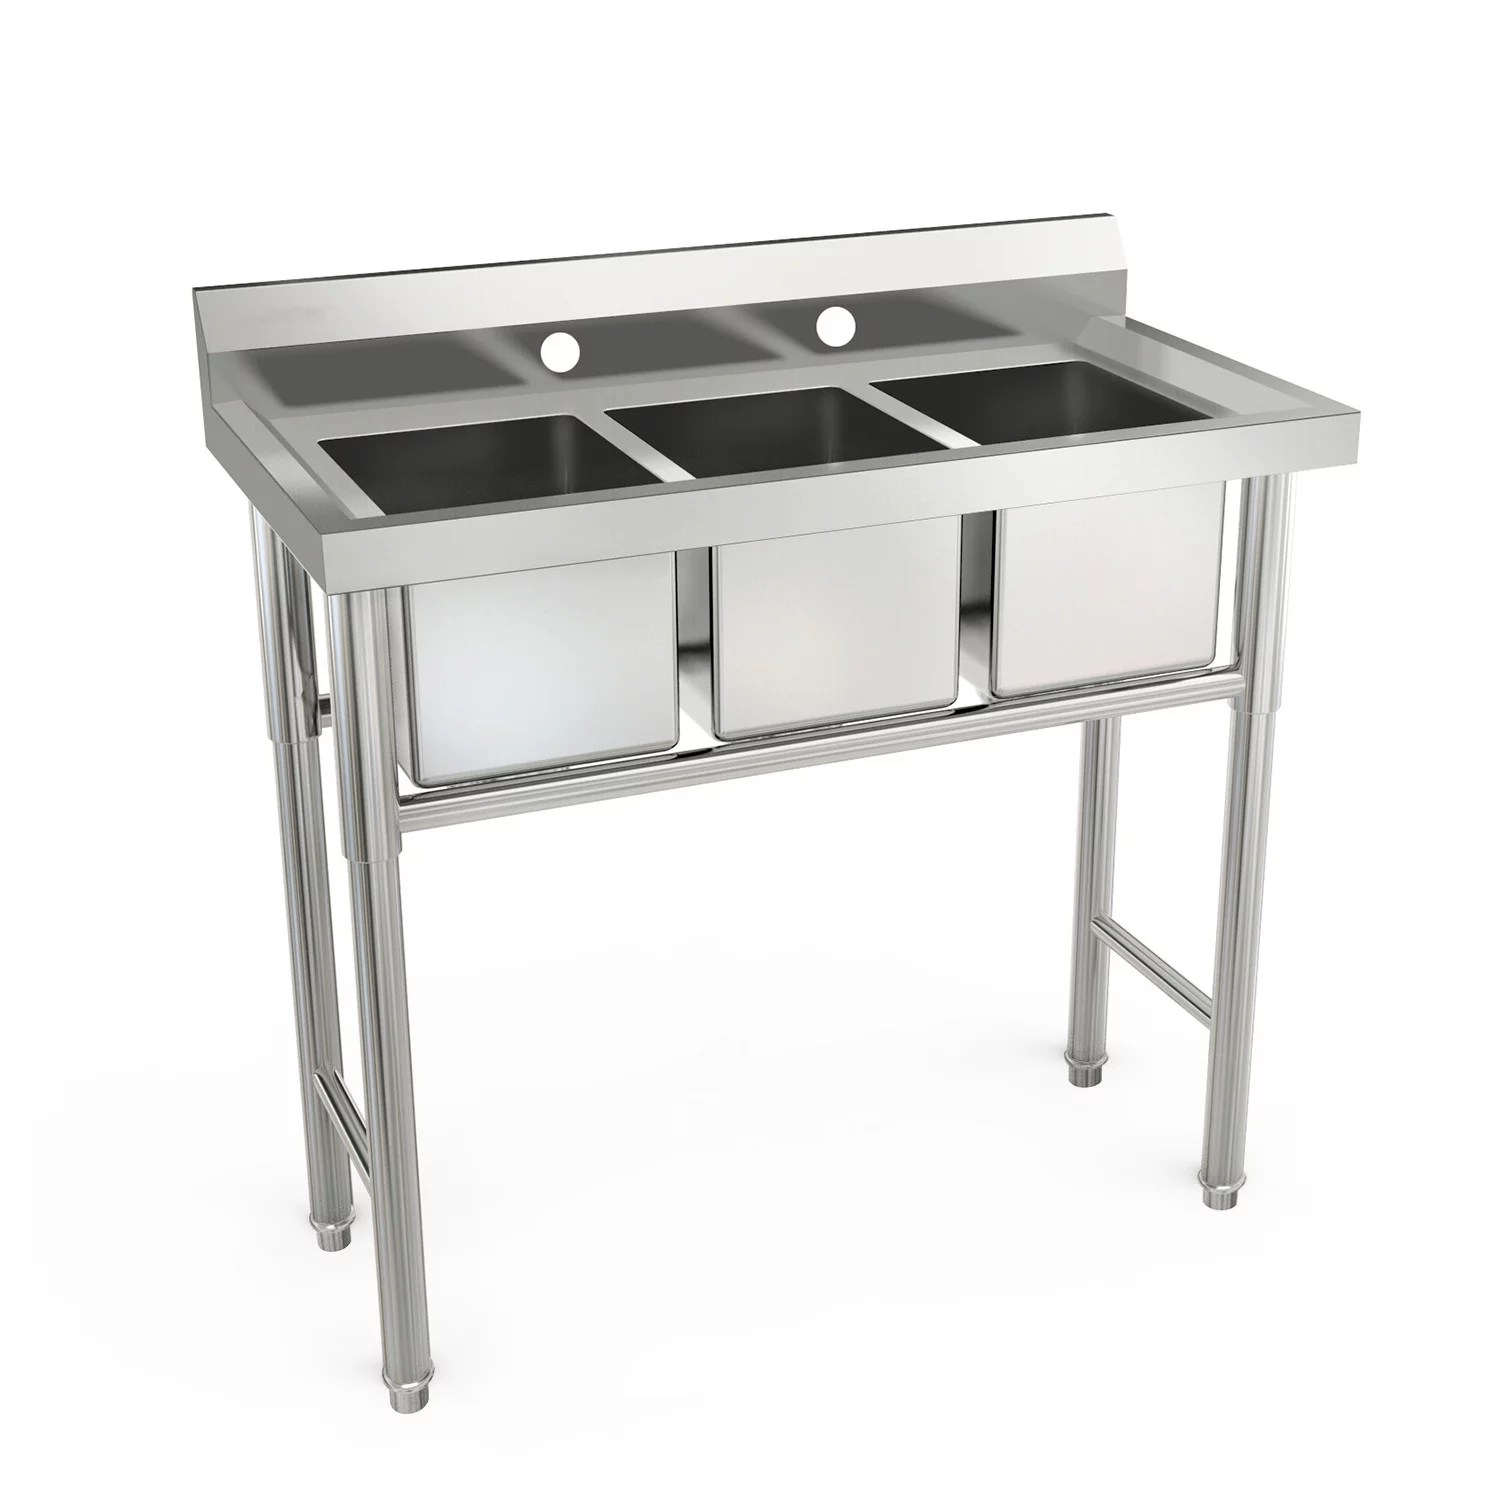 ktaxon heavy duty 39 3 compartment commercial stainless steel sink walmart com